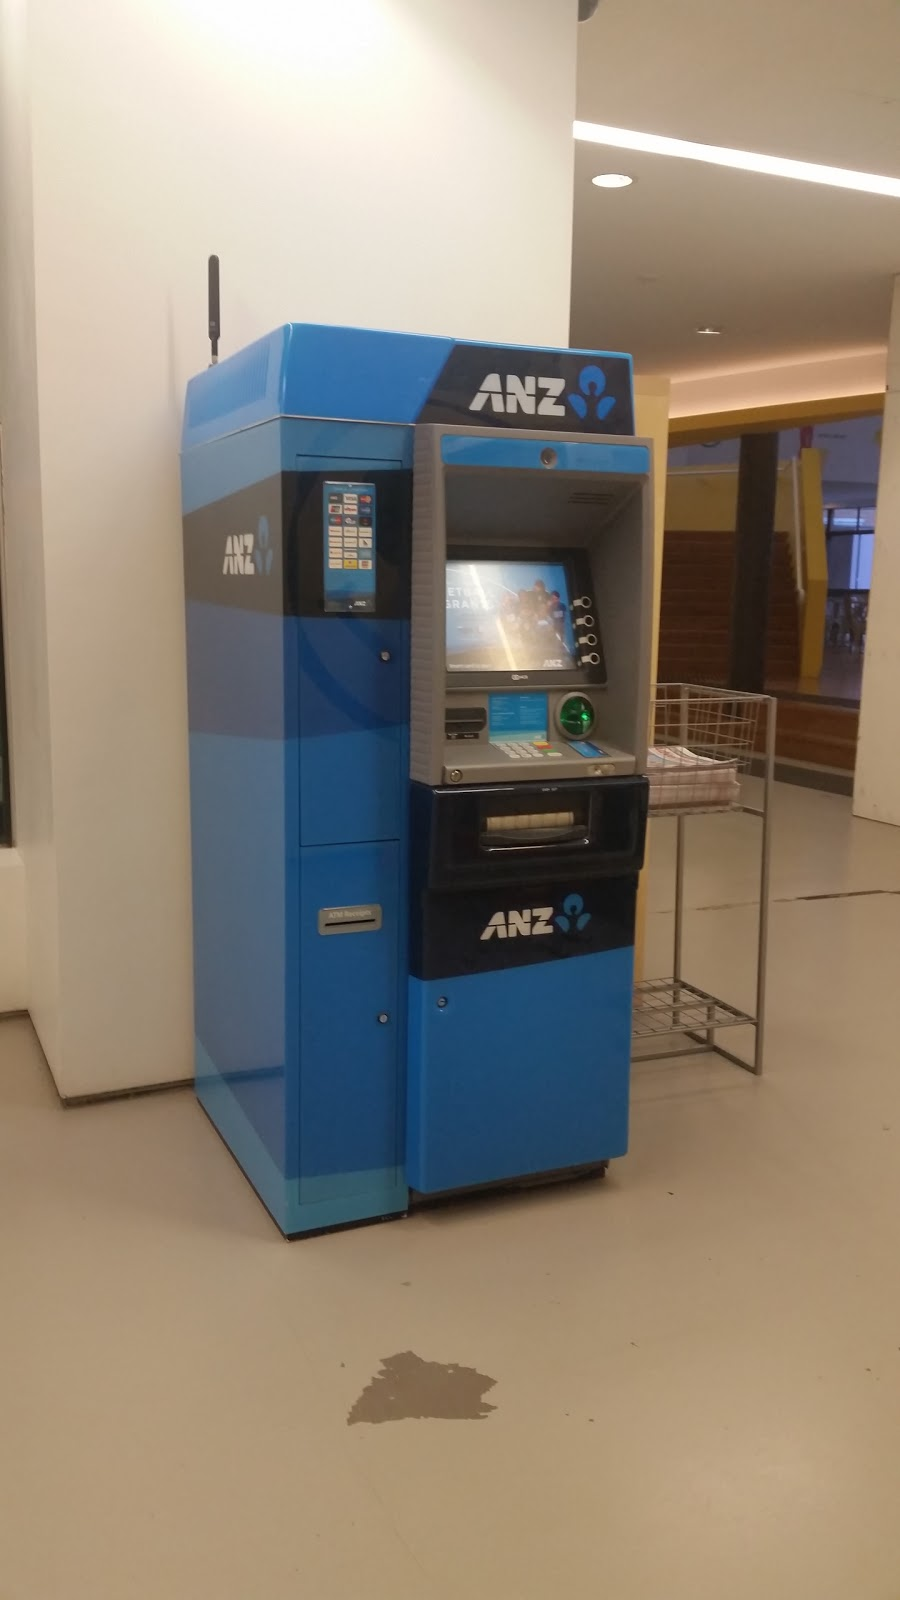 ANZ ATM Uni Of Wollongong | atm | 1 Northfields Ave, Keiraville NSW 2552, Australia | 131314 OR +61 131314